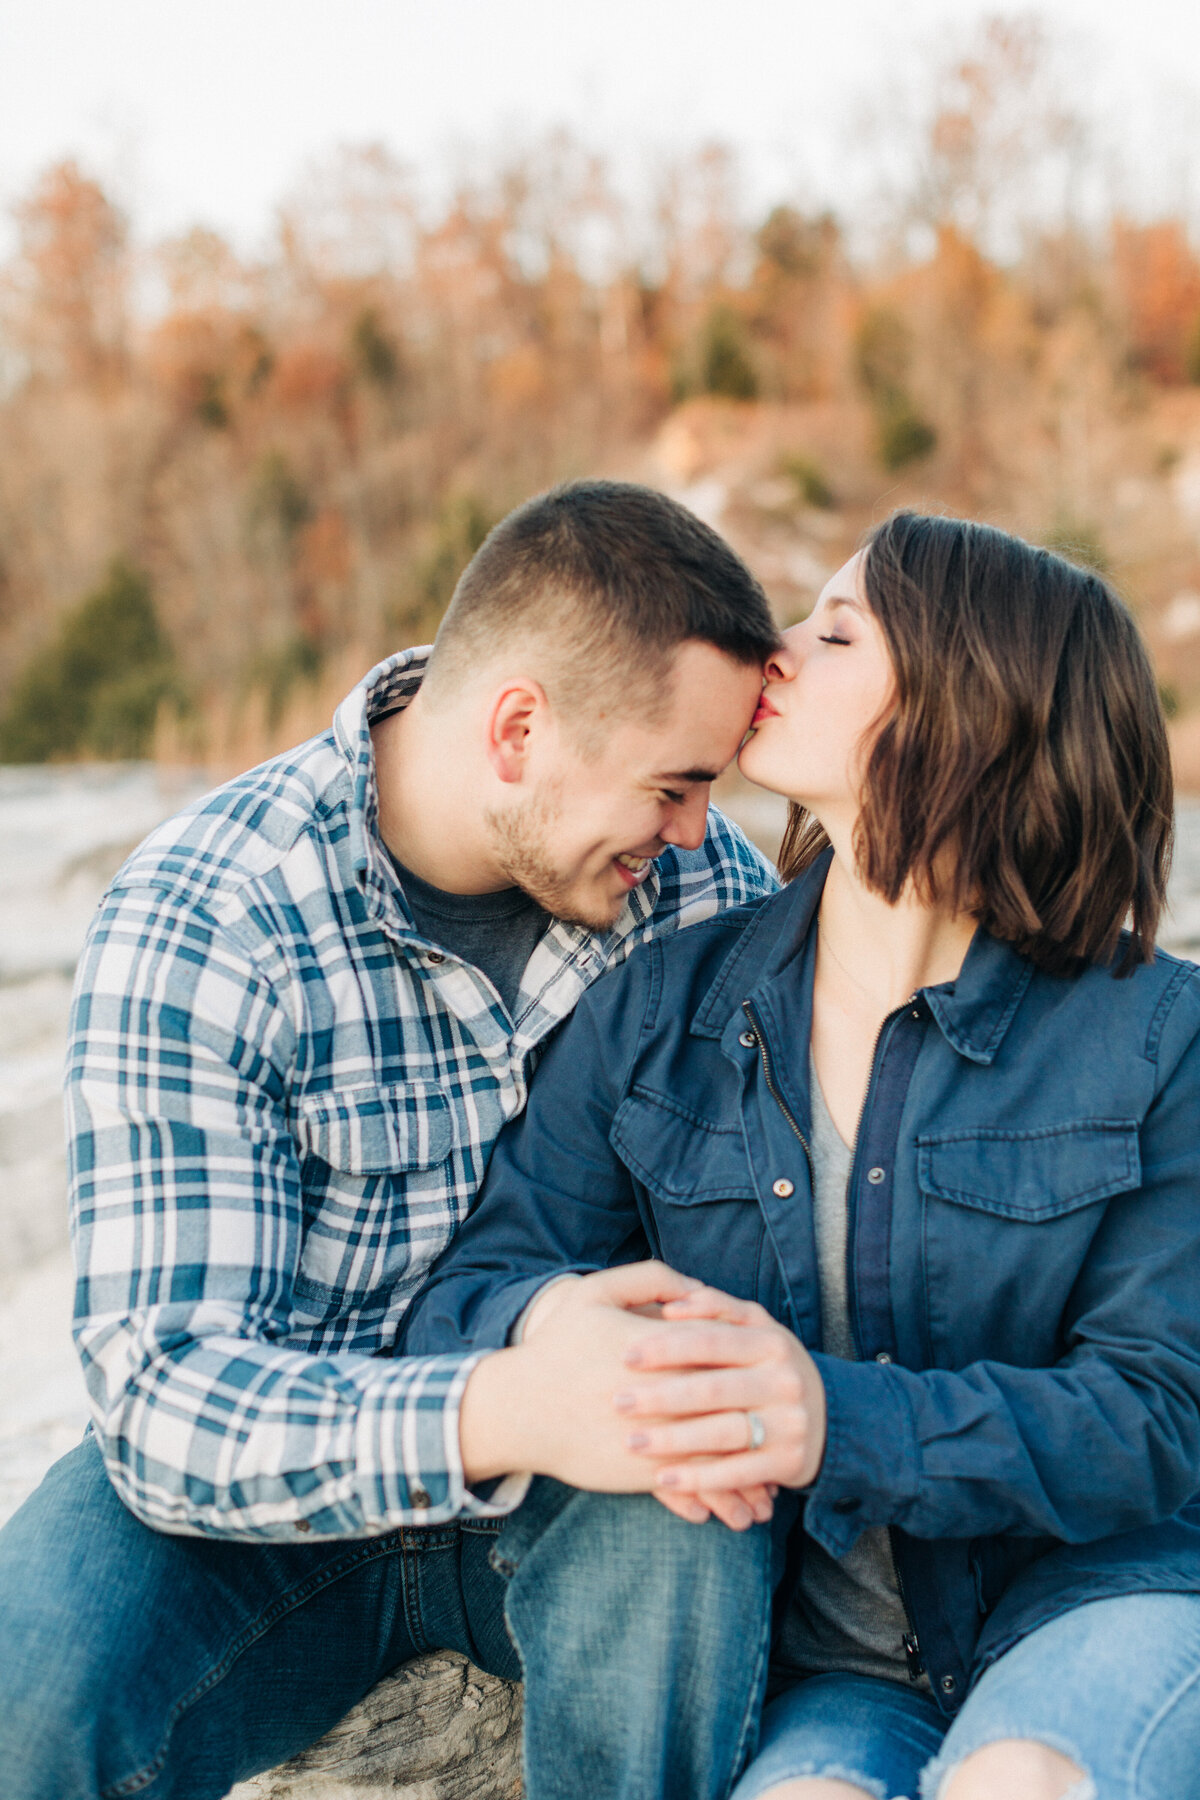 Dorothy_Louise_Photography_Hannah_Luke_Klondike_Park_Augusta_Missouri_Fall_Engagement_Photos-293